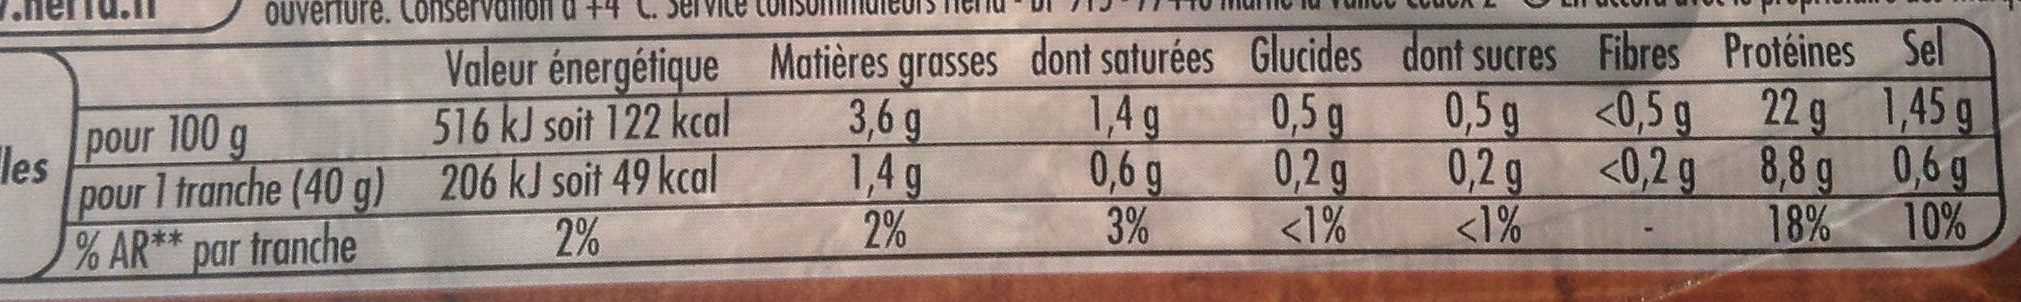 Tendre noix broche -25% sel - Nutrition facts - fr